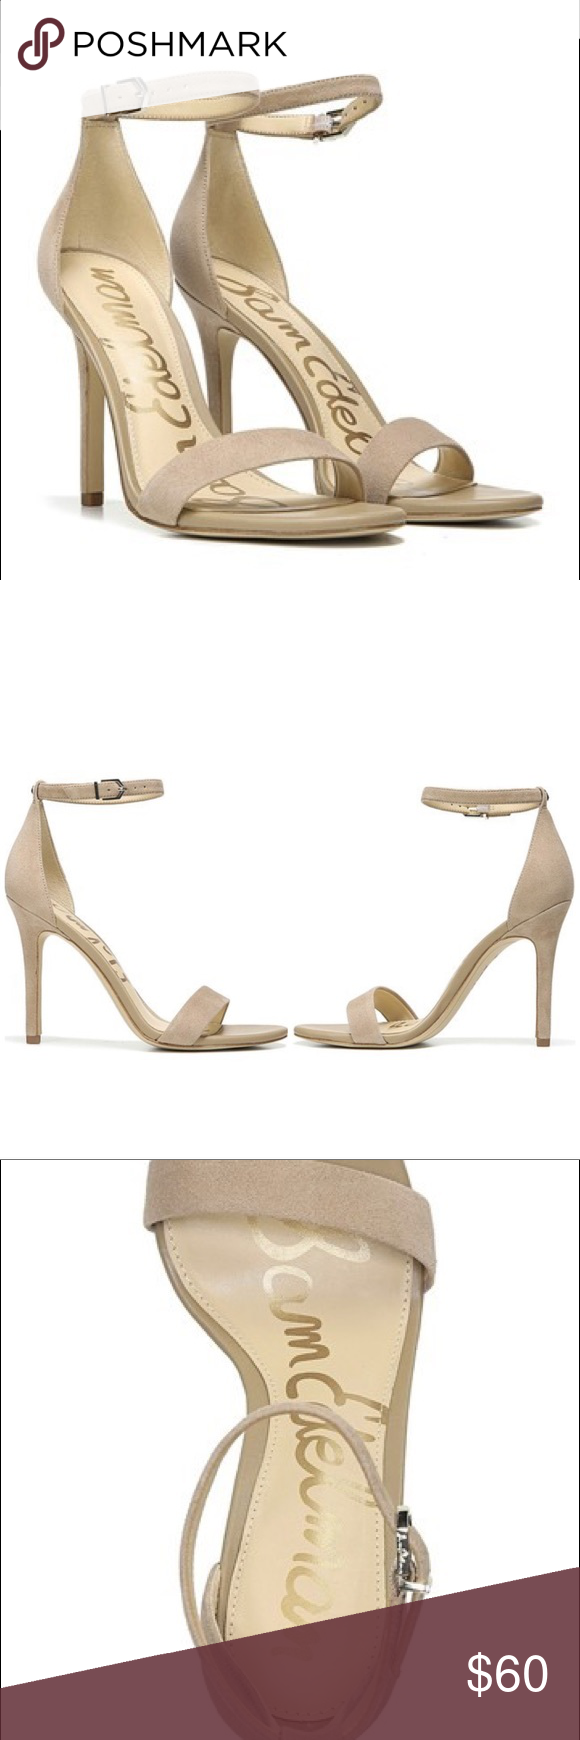 1a1272df7b425 Sam Edelman Amee Ankle Strap Suede Heel Sandal The Sam Edelman Amee shoe is  the perfect staple heel to match almost all outfits!